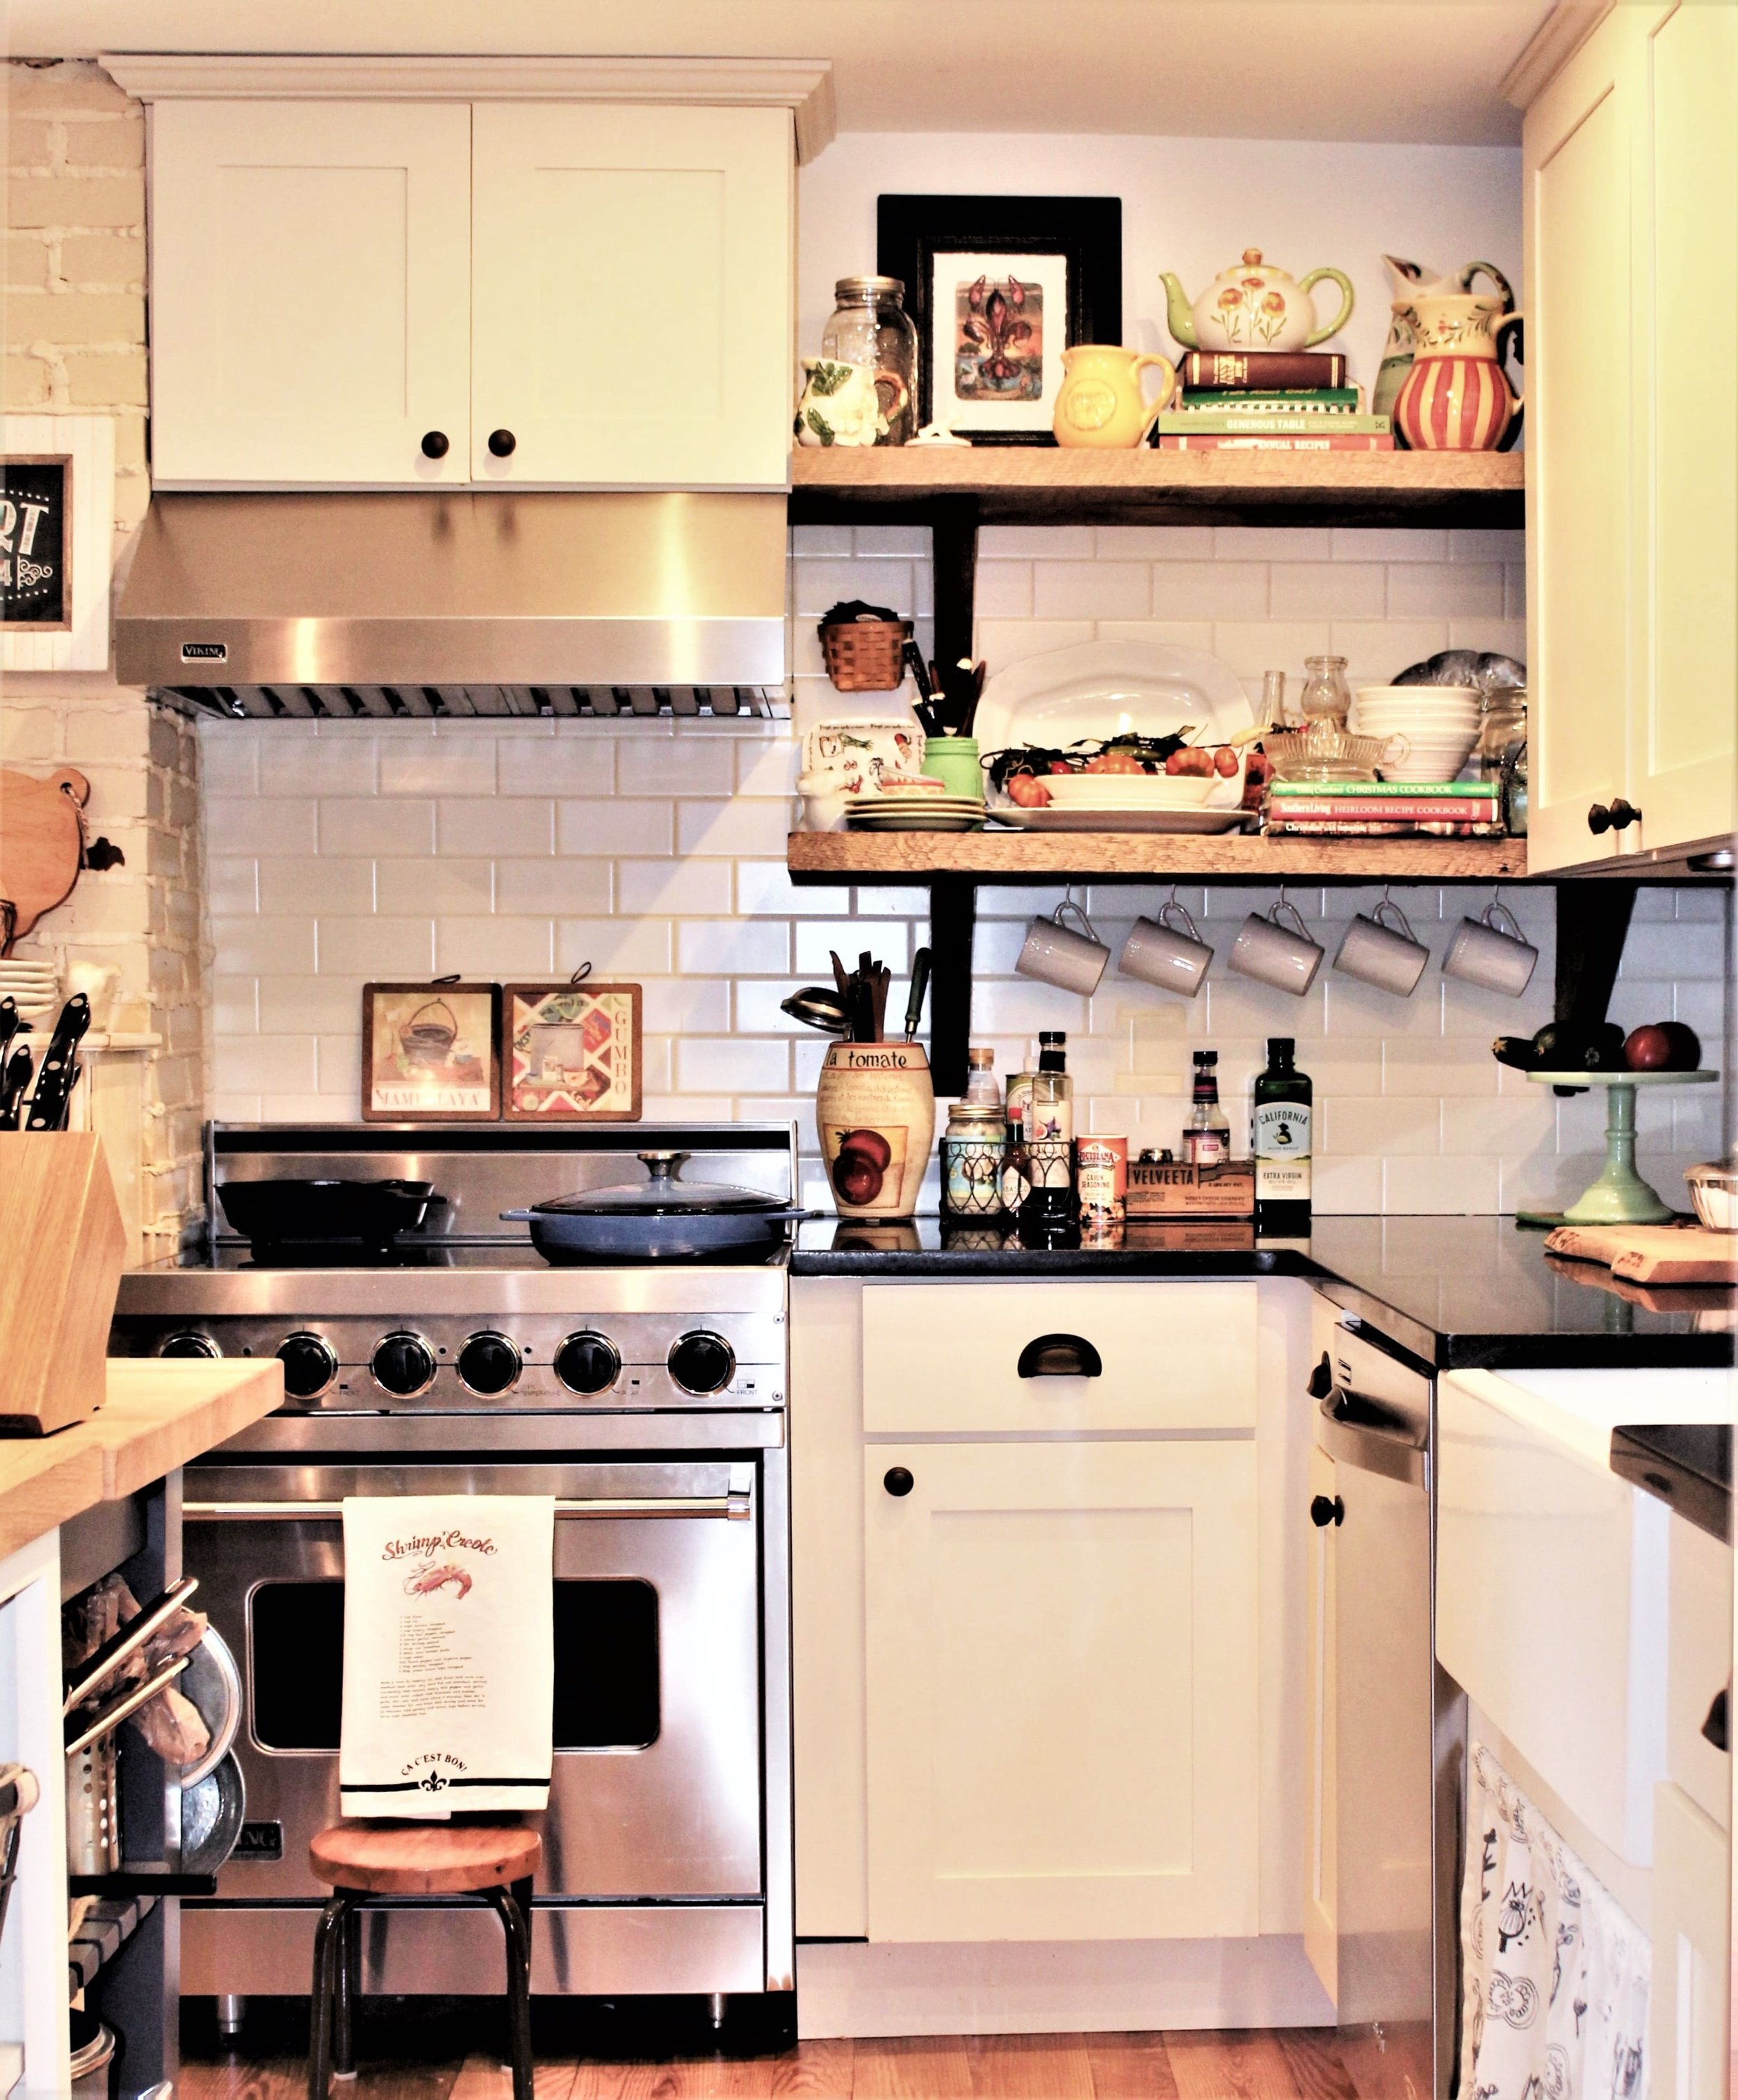 A historic cottage keeps its charm with the painted brick chimney, pine floors and warm white shaker cabinetry. The honed black countertops play off the birdcage light which is accented by a vintage piece of tin on the ceiling. The Eggplant color mobile butcher block cart add a bit of color and flexibility to this cottage kitchen but blends with the rest of the butcher block island when positioned at the end of the island.